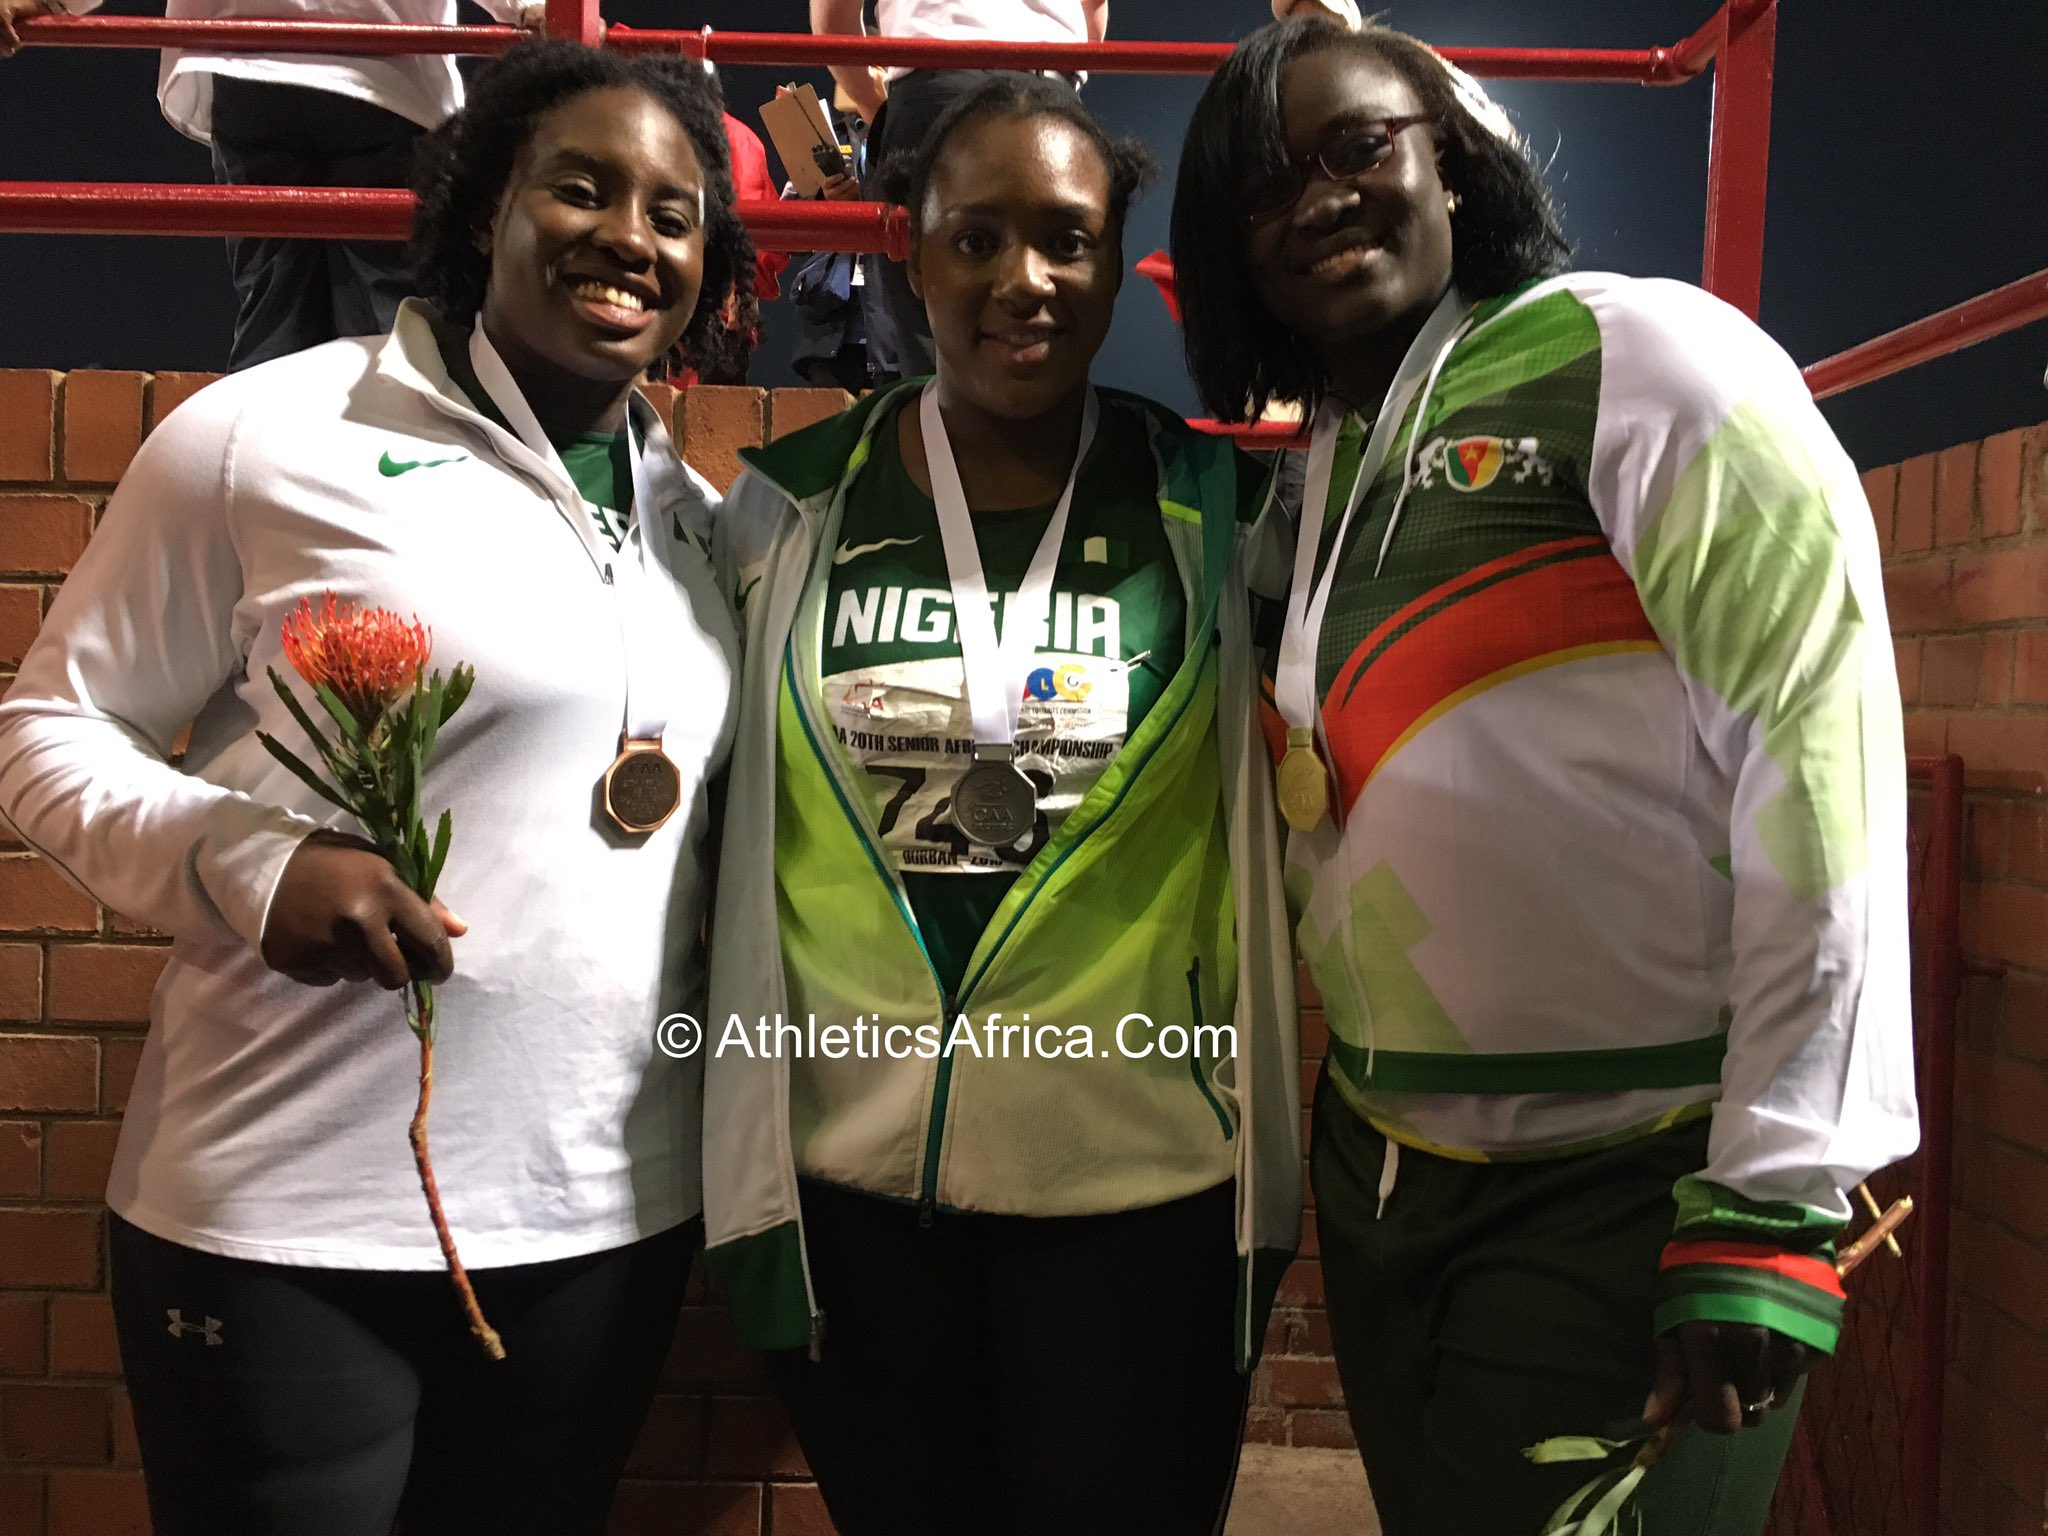 📸 The medallists Women's Shot Put: Auriol Sally Dongmo 🇨🇲, Nwanneka Okwelogu & Chioma Onyekwere 🇳🇬 #AfricanChamps https://t.co/Efs8S9GNJZ